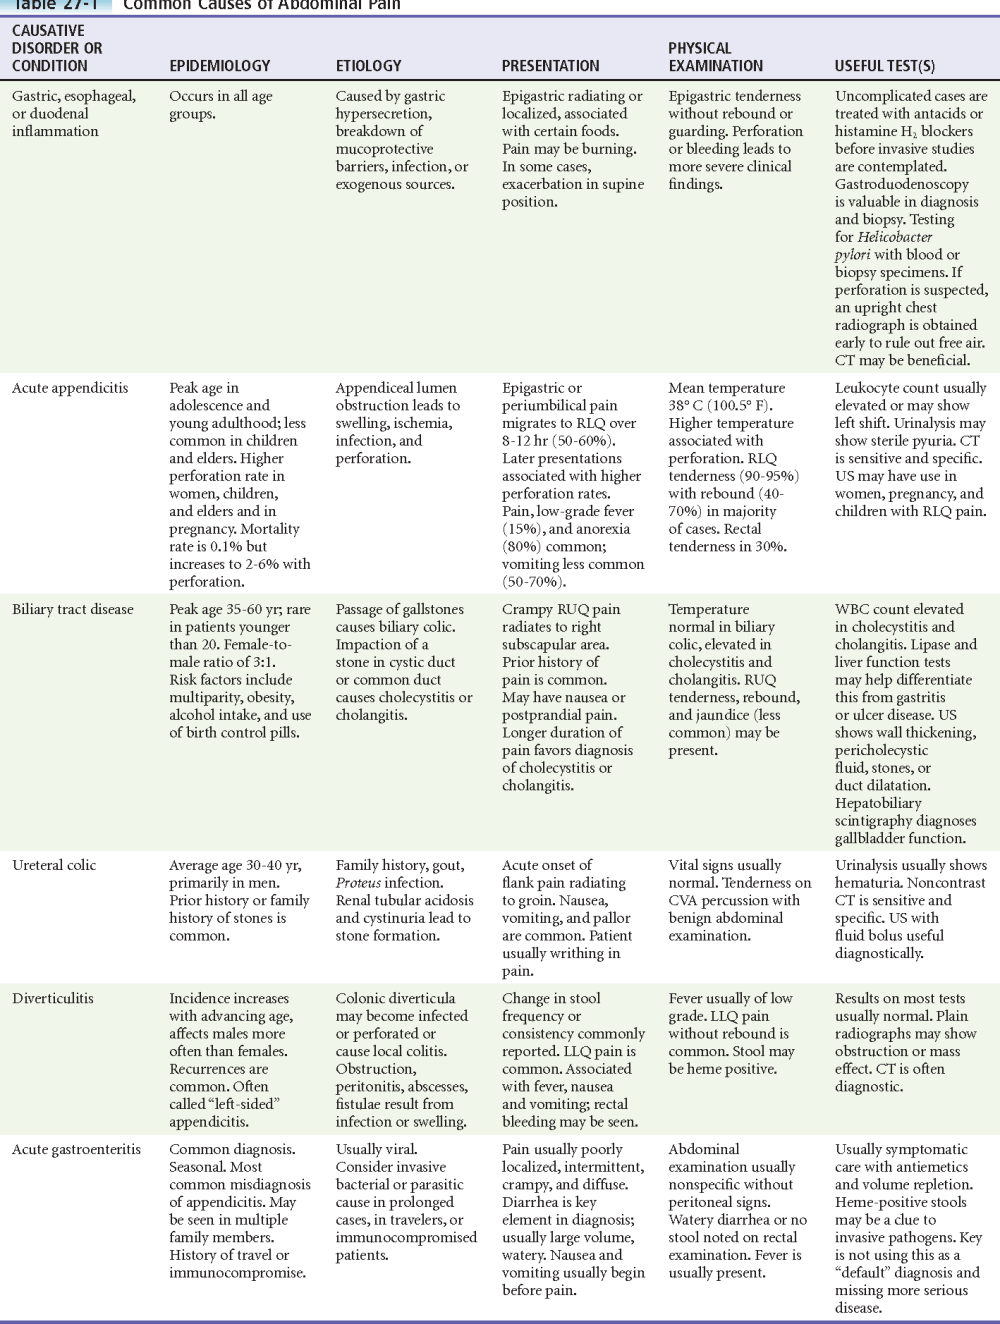 medium resolution of table 27 1 common causes of abdominal pain